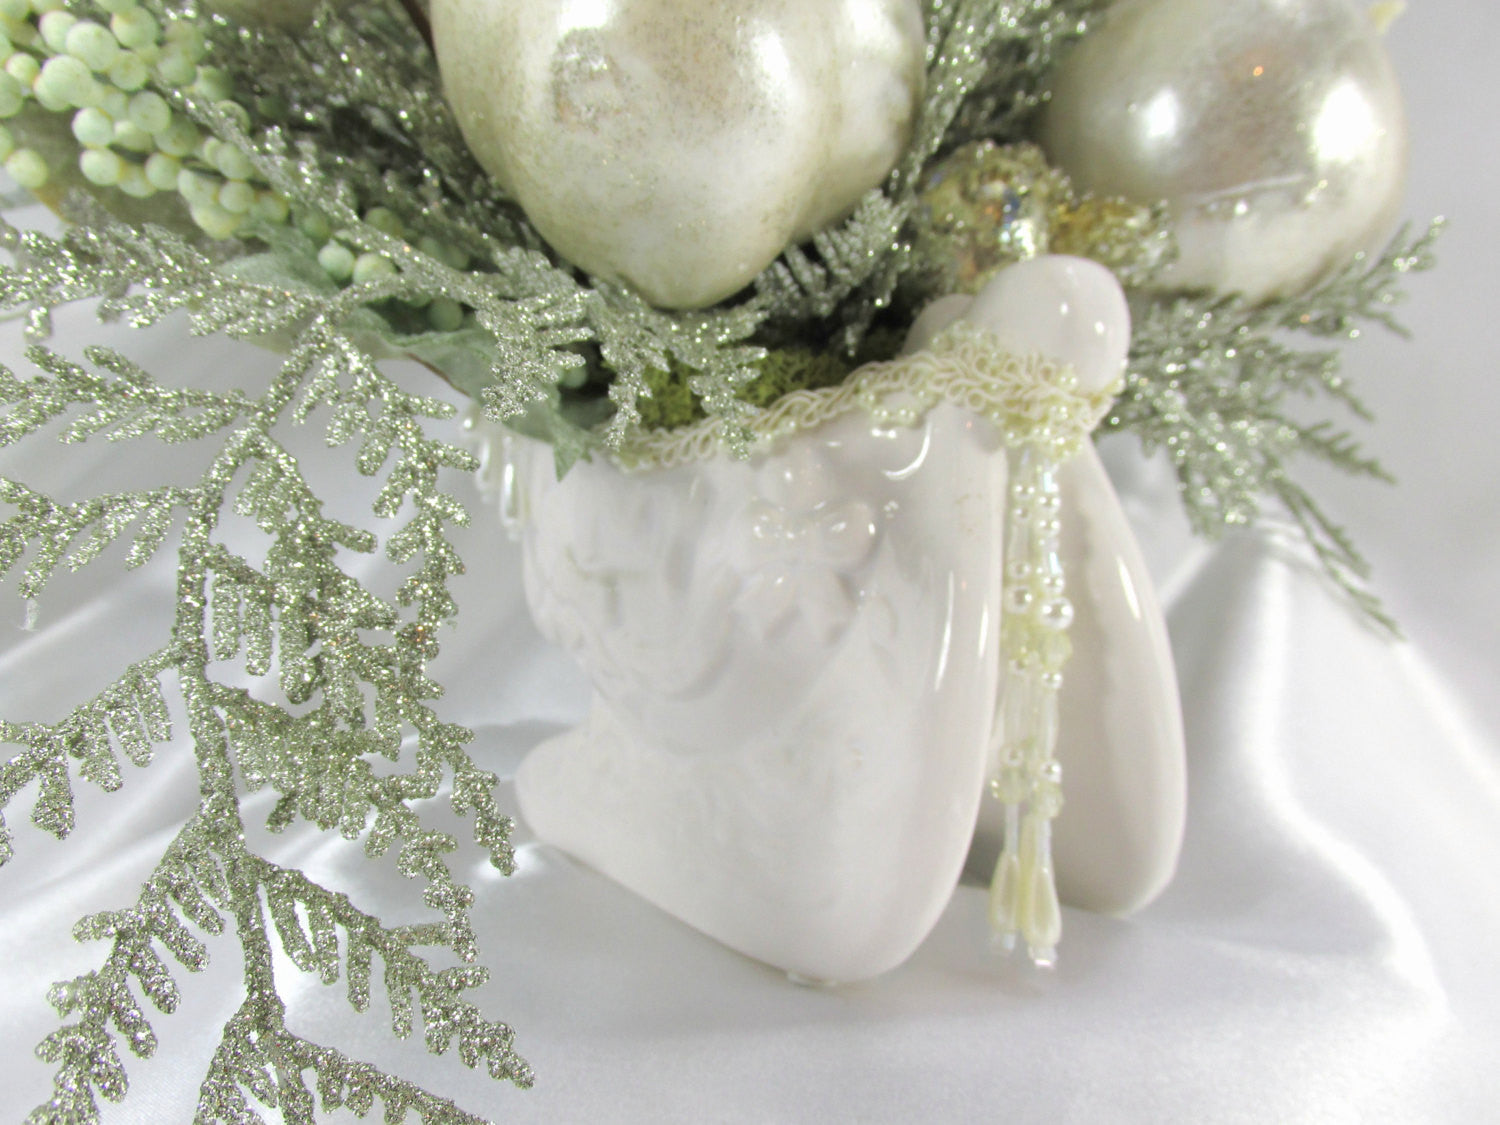 Ivory Magnolia Winter Floral Centerpiece in Porcelain Sleigh with Mint Green and Ivory Pearl Accents - Odyssey Creations